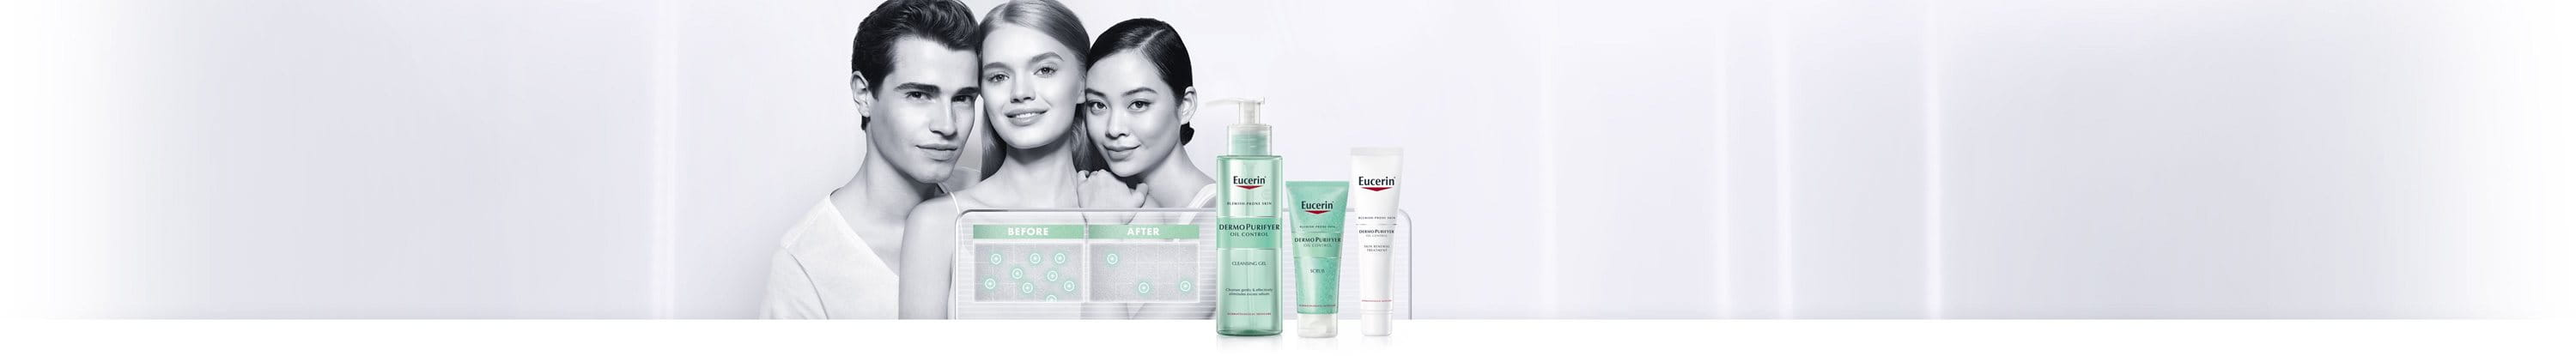 Woman with facial acne prone skin